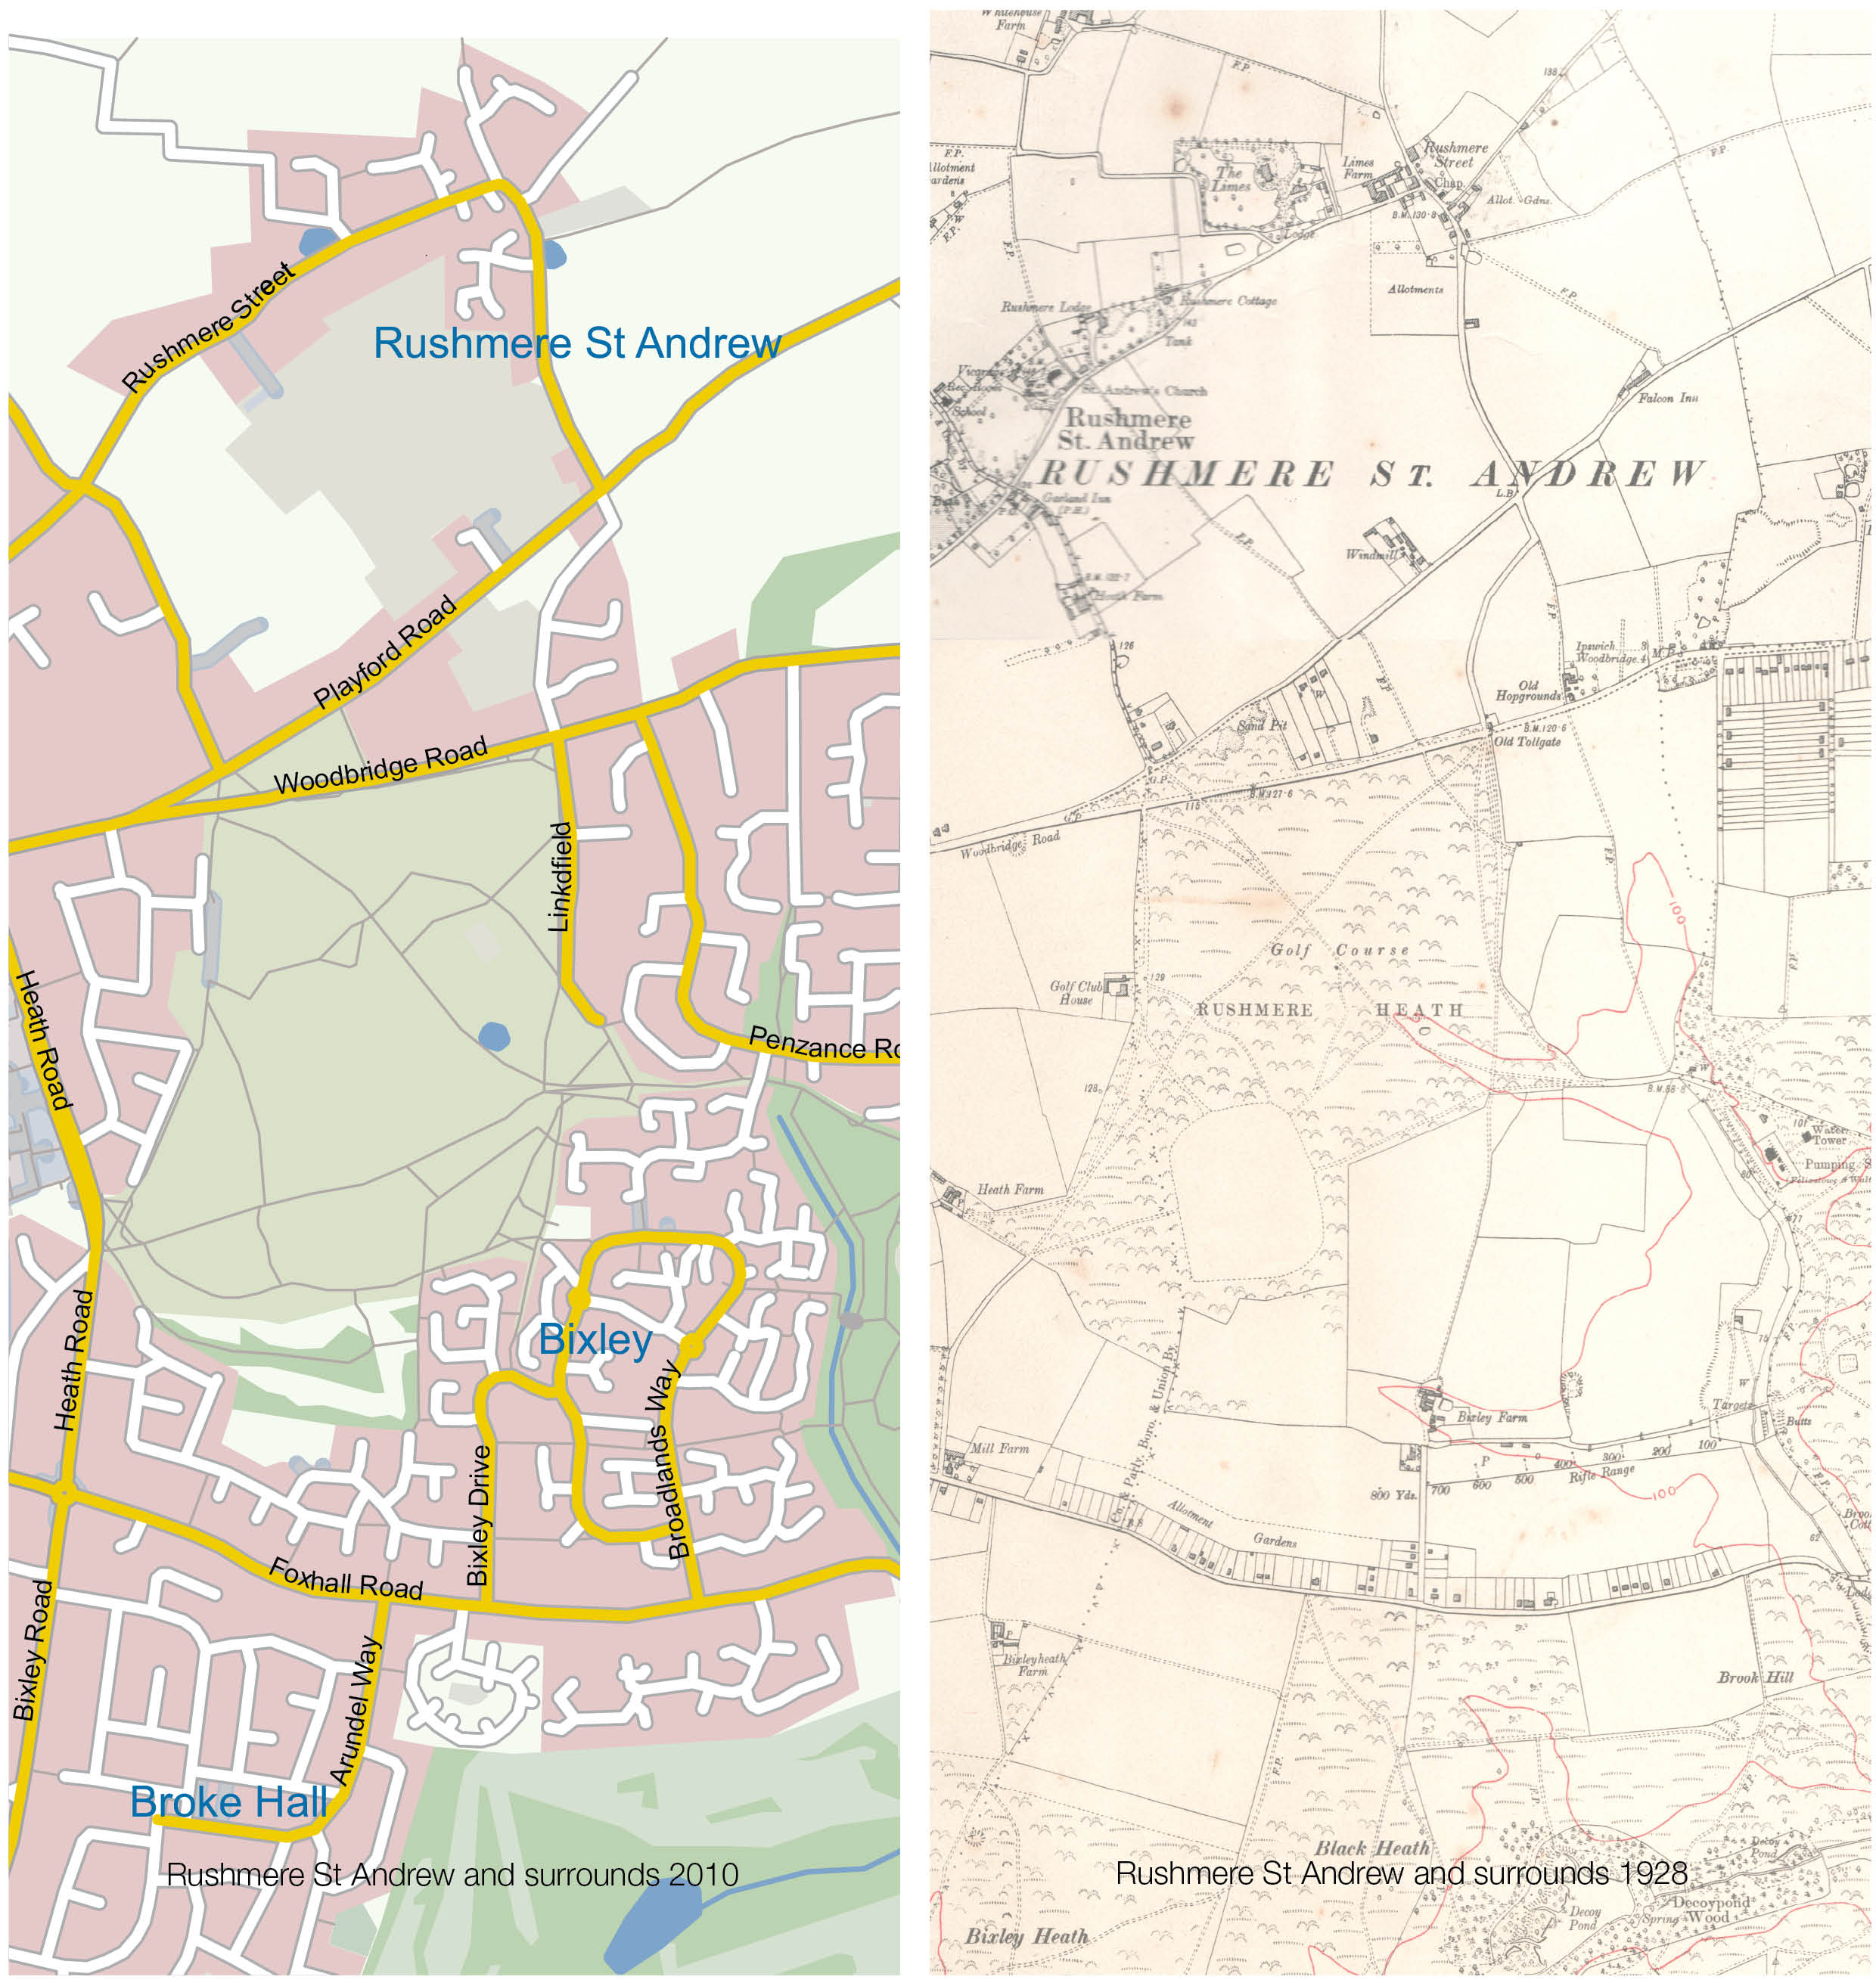 Rushmere St Andrew maps past and present